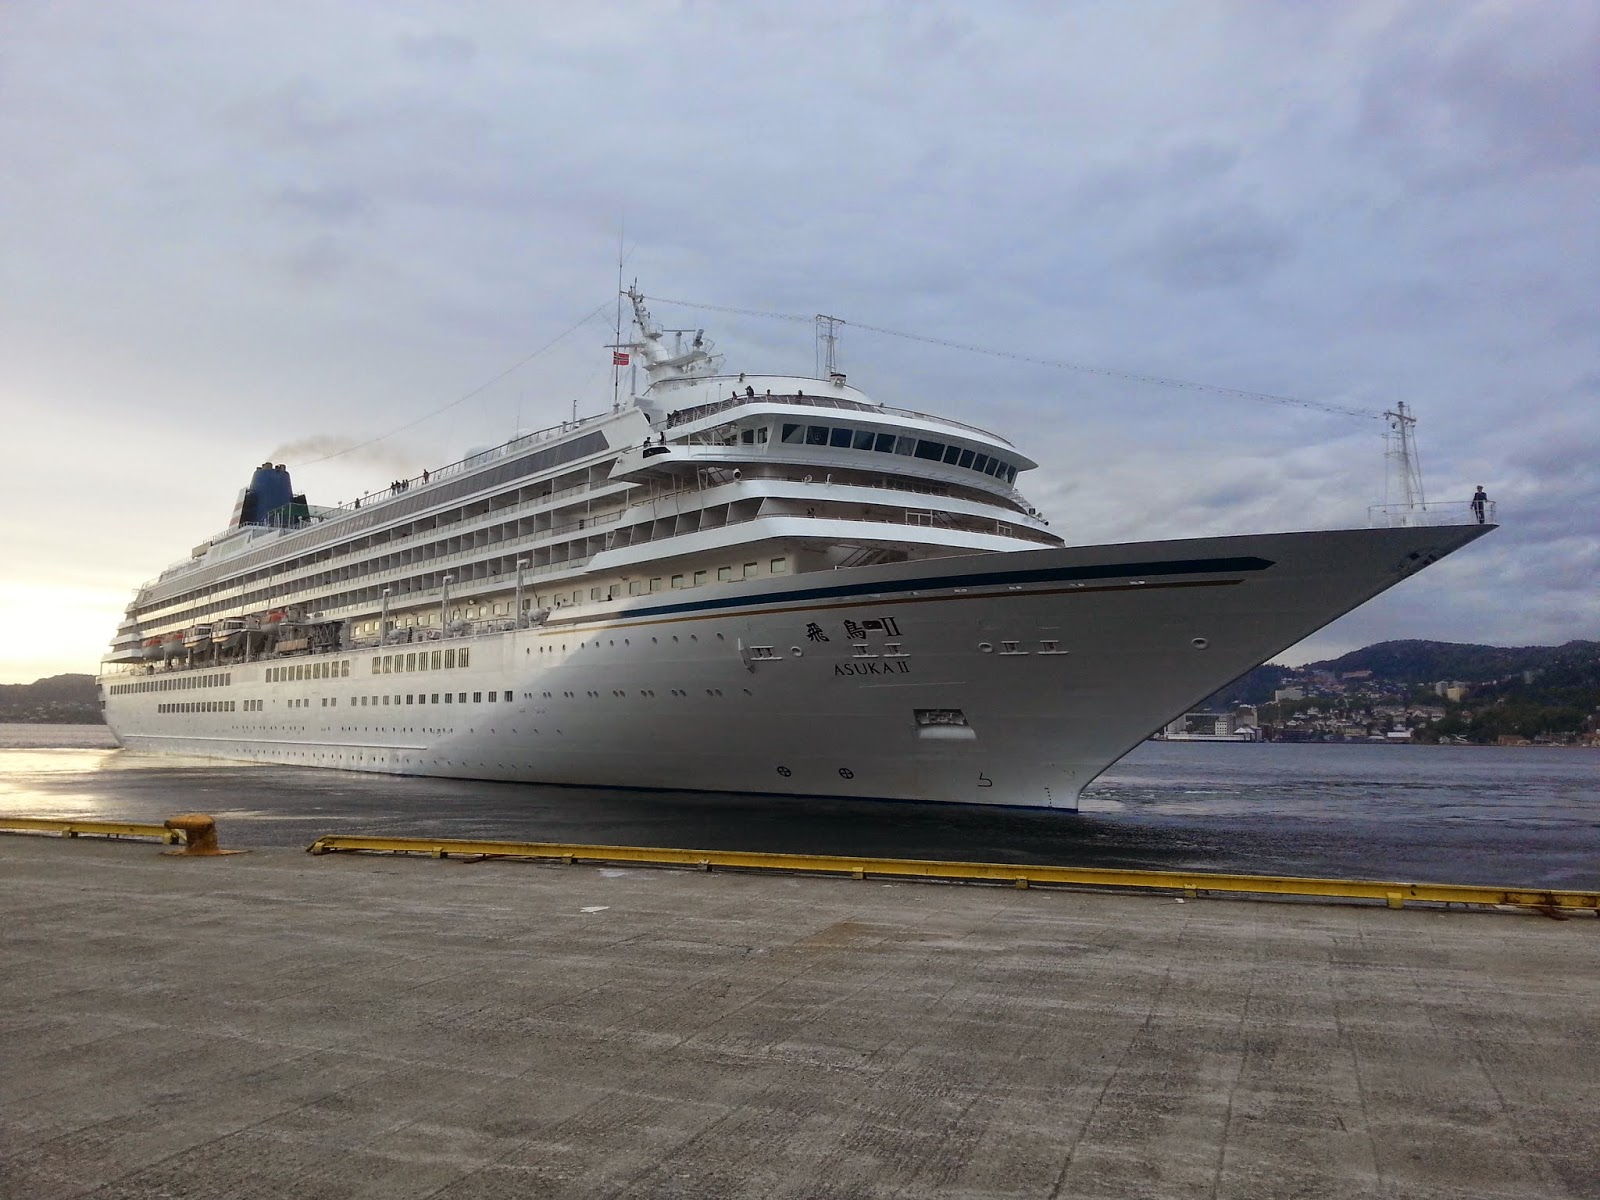 Japanese Cruise Ship Asuka II in Bergen, Norway